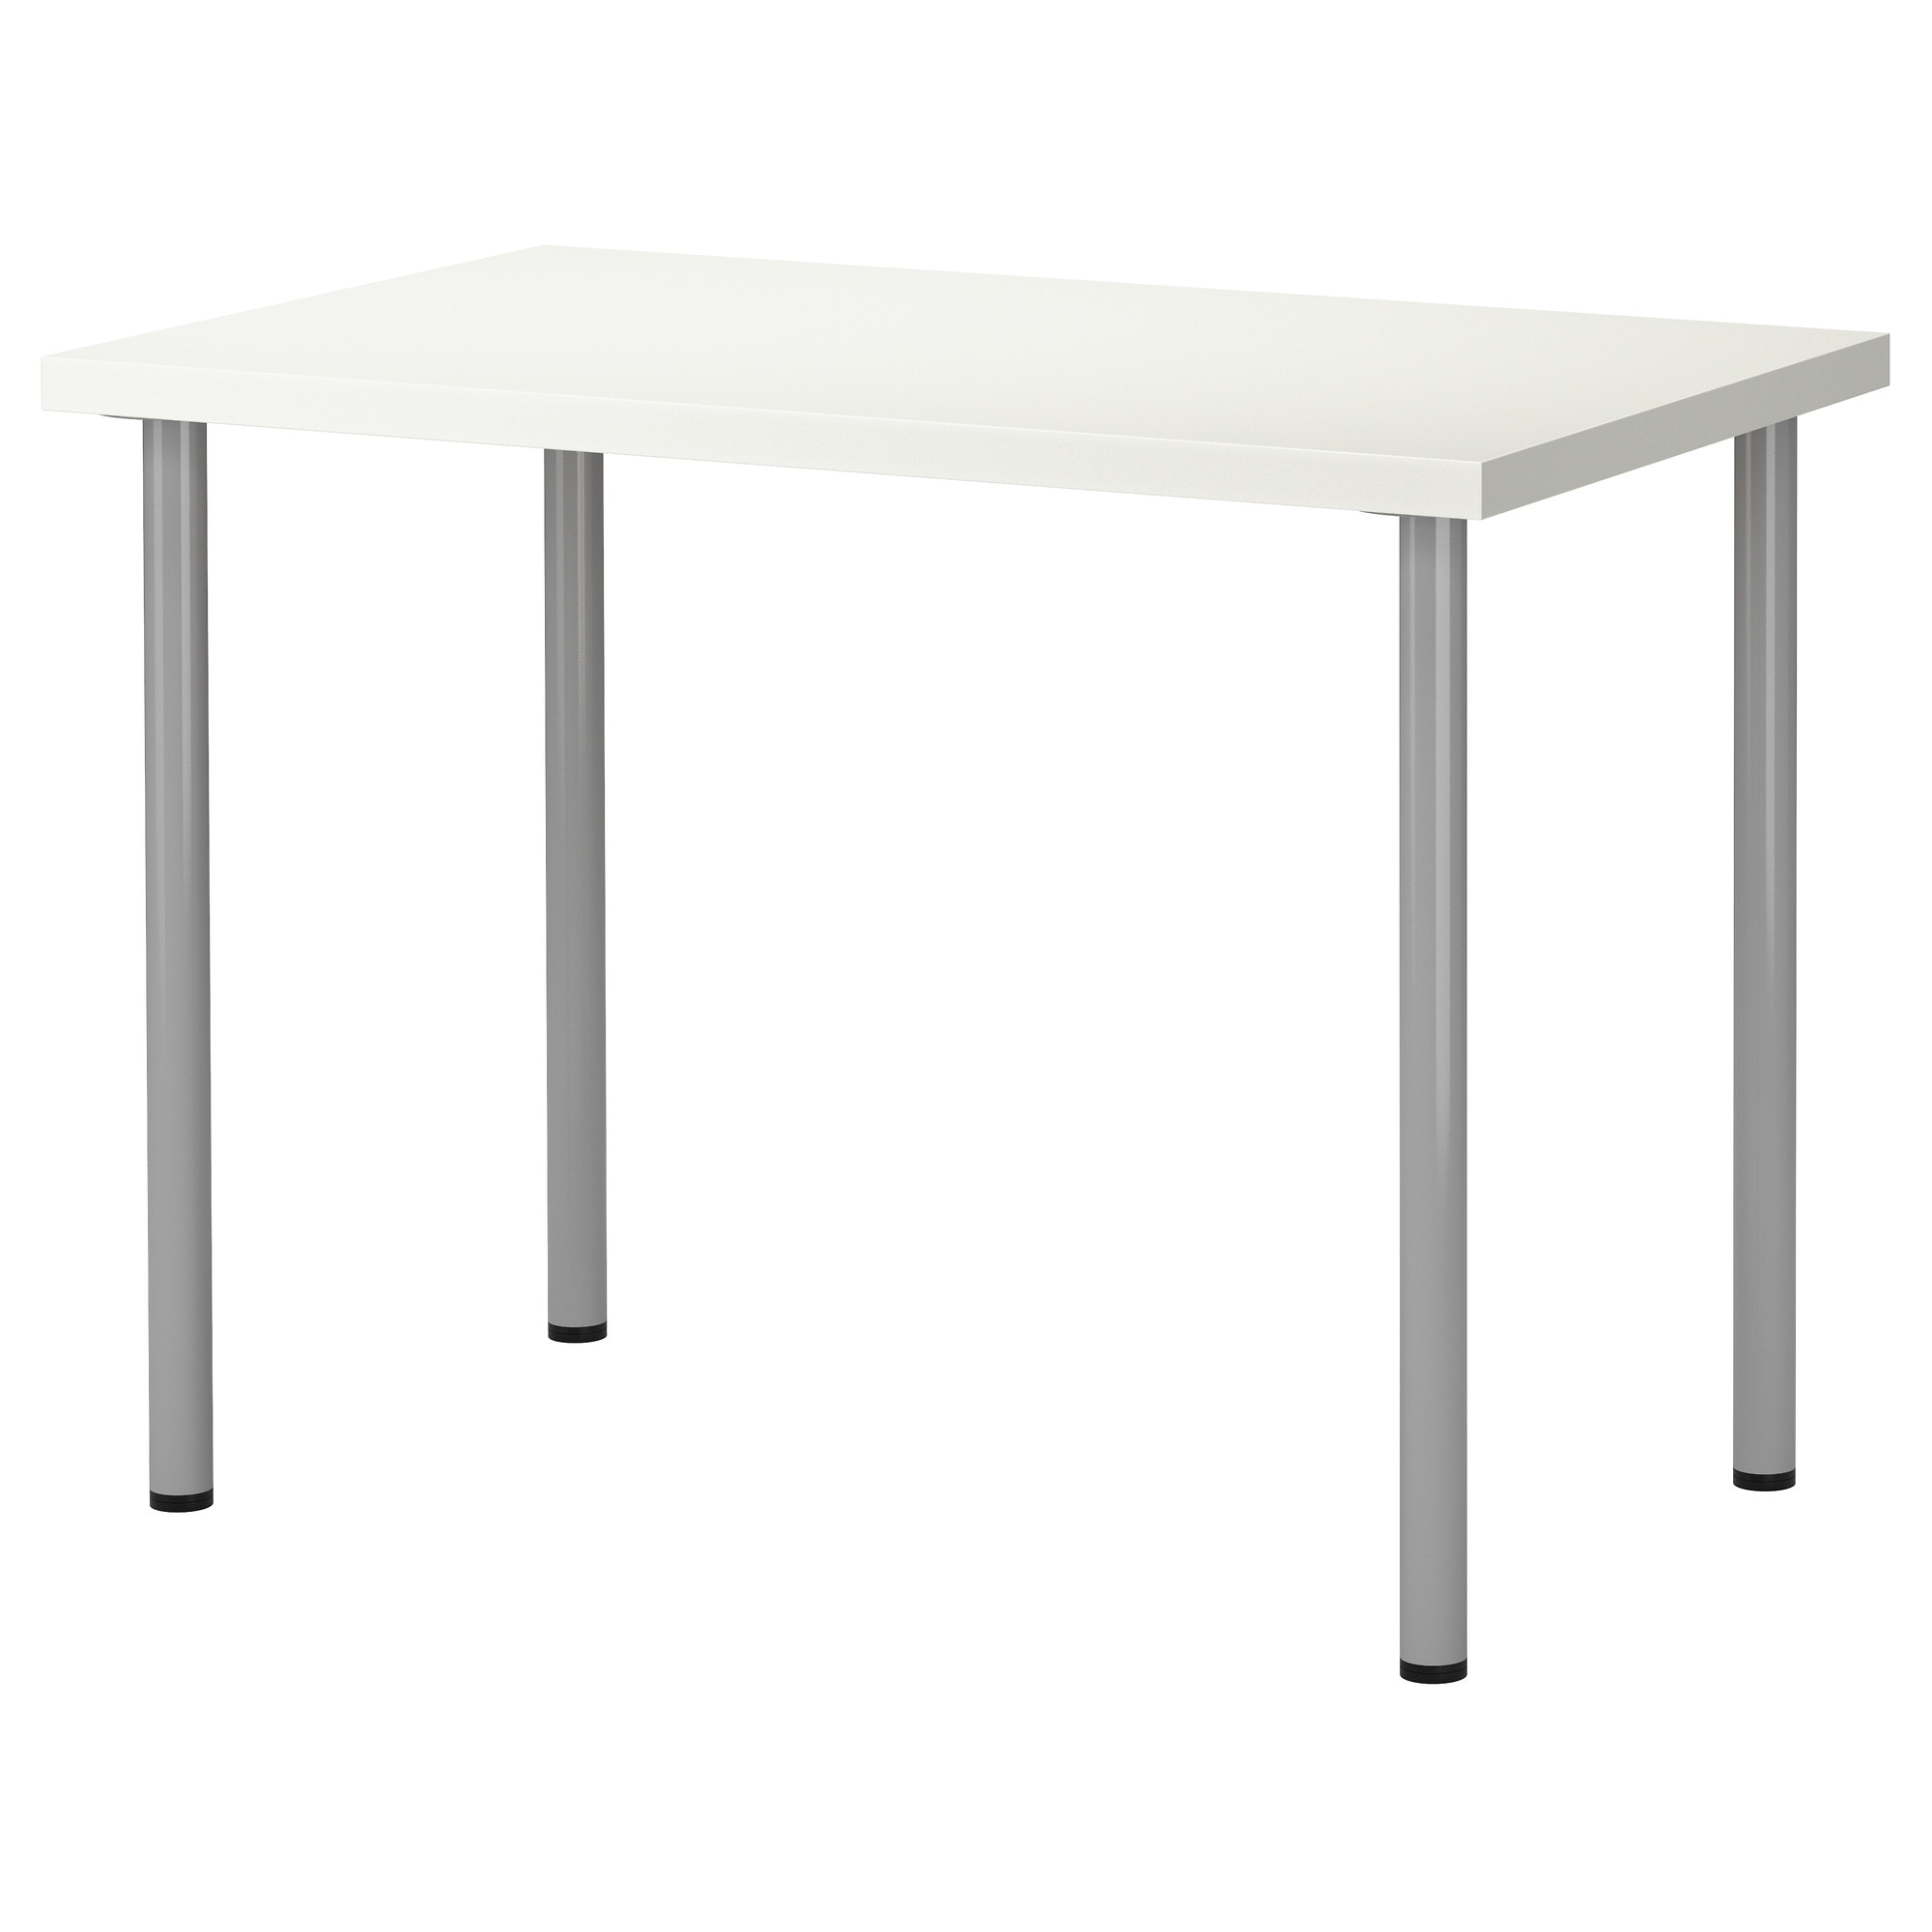 Superior LINNMON / ADILS Table   White   IKEA